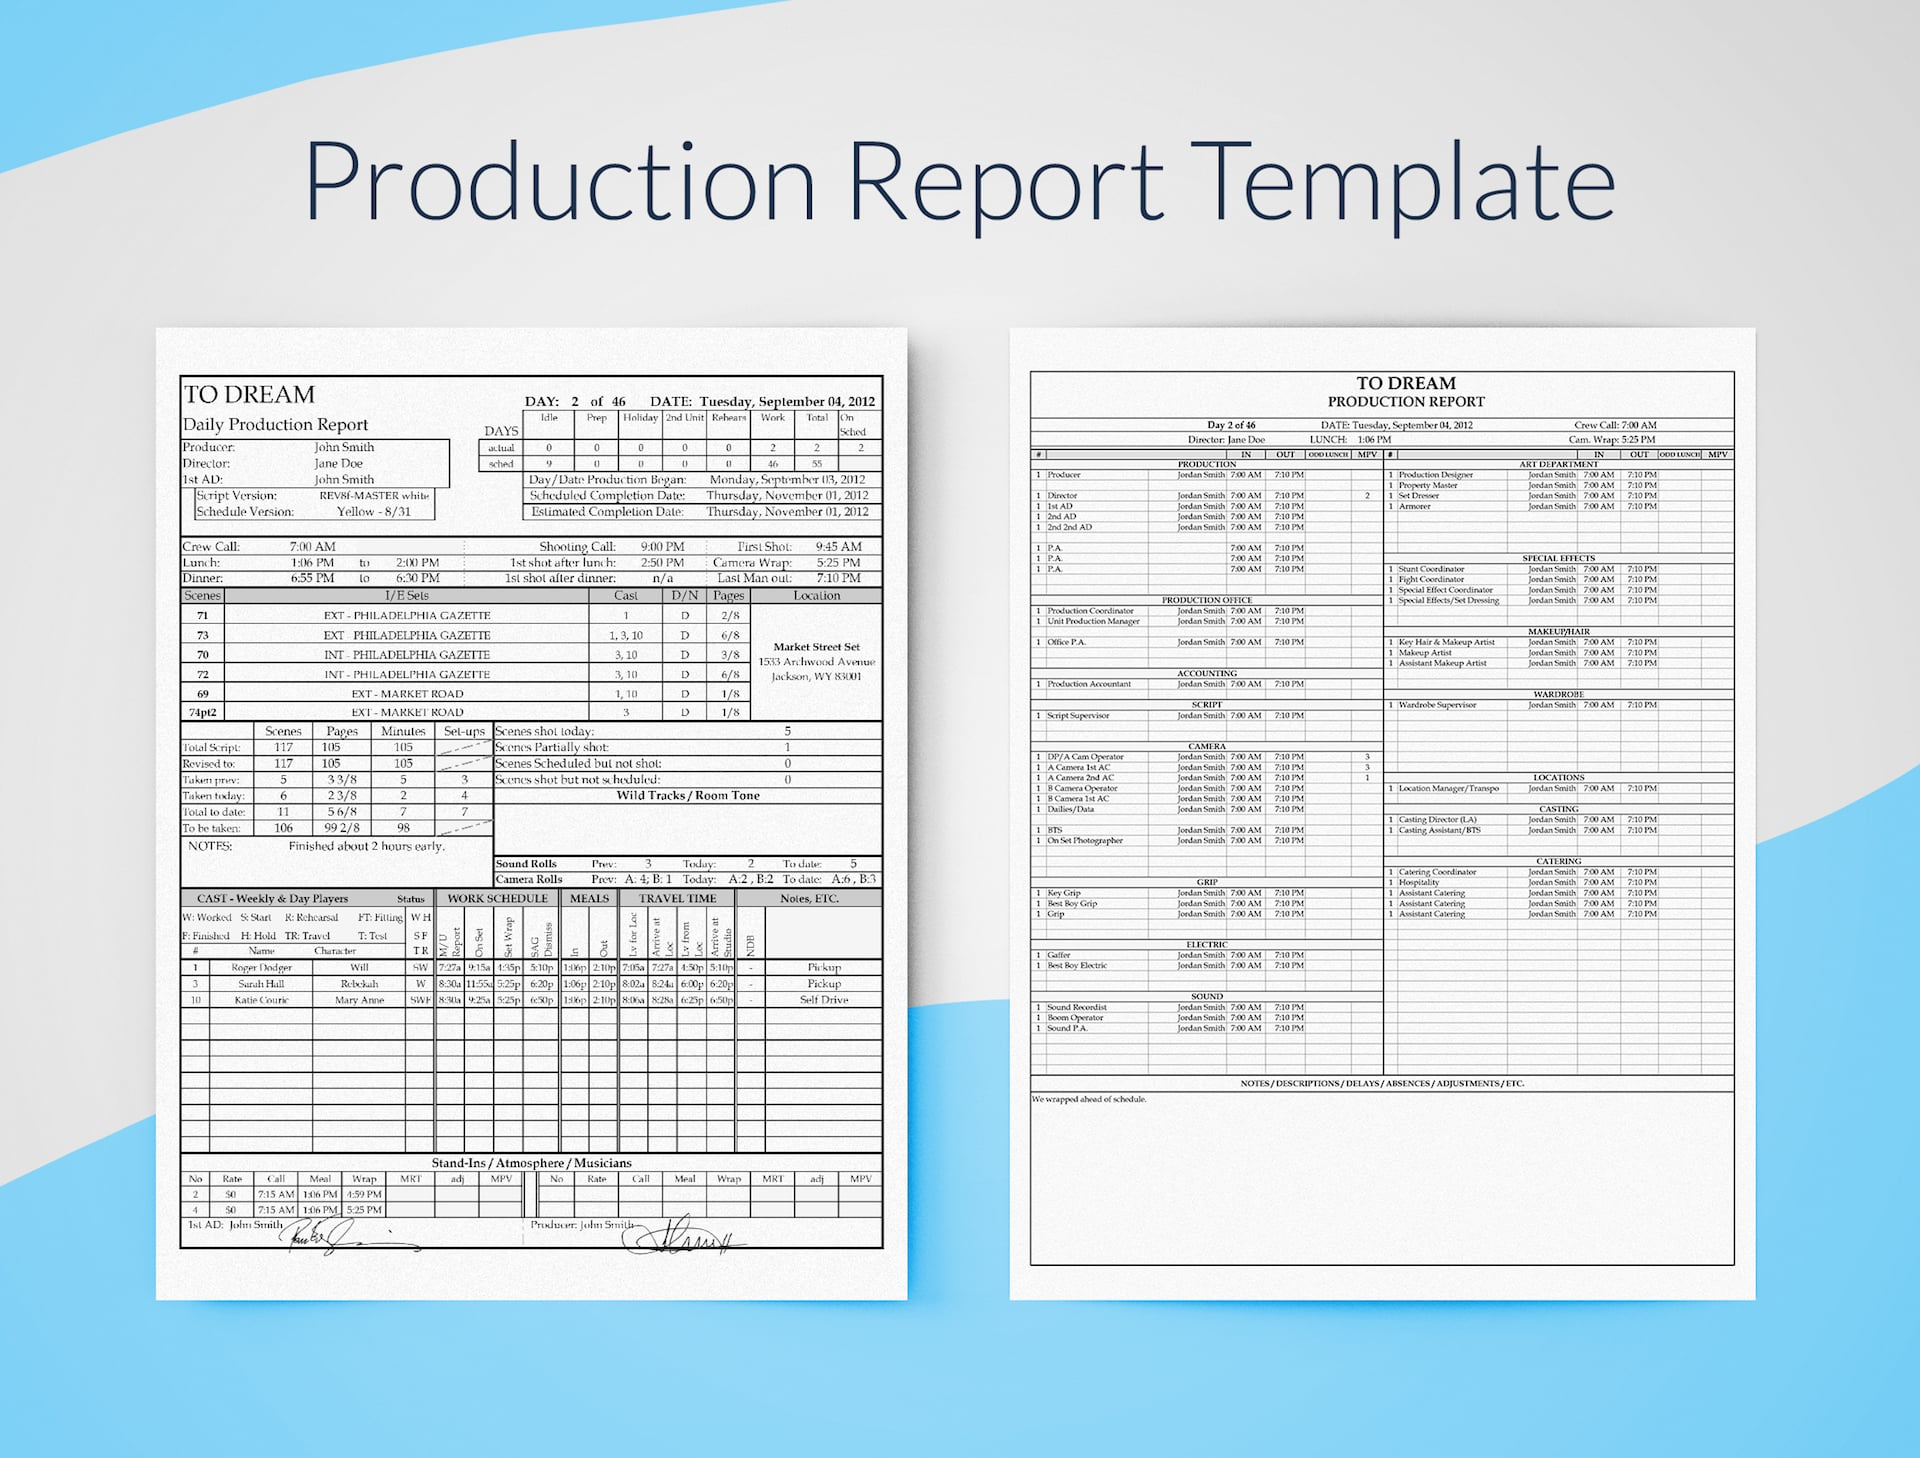 Production report template for excel free download sethero professional film daily production report template free maxwellsz